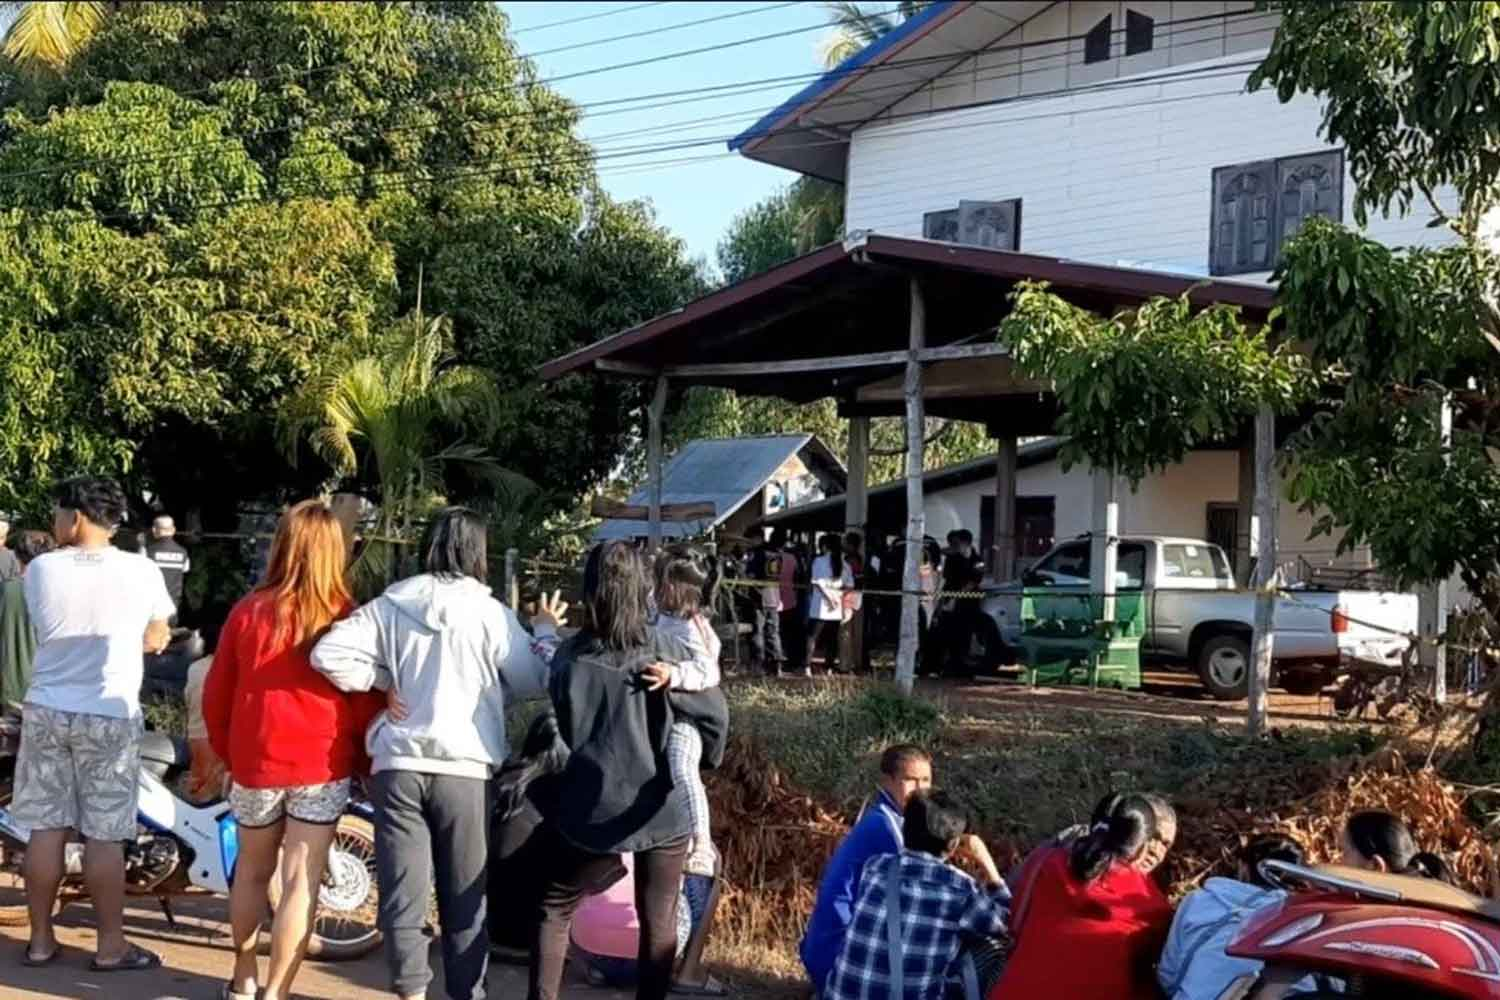 Villagers gather in front of a house where a man killed his wife and two daughters before hanging himself in Phen district of Udon Thani on Sunday morning. (Photo by Yuttapong Kumnodnae)